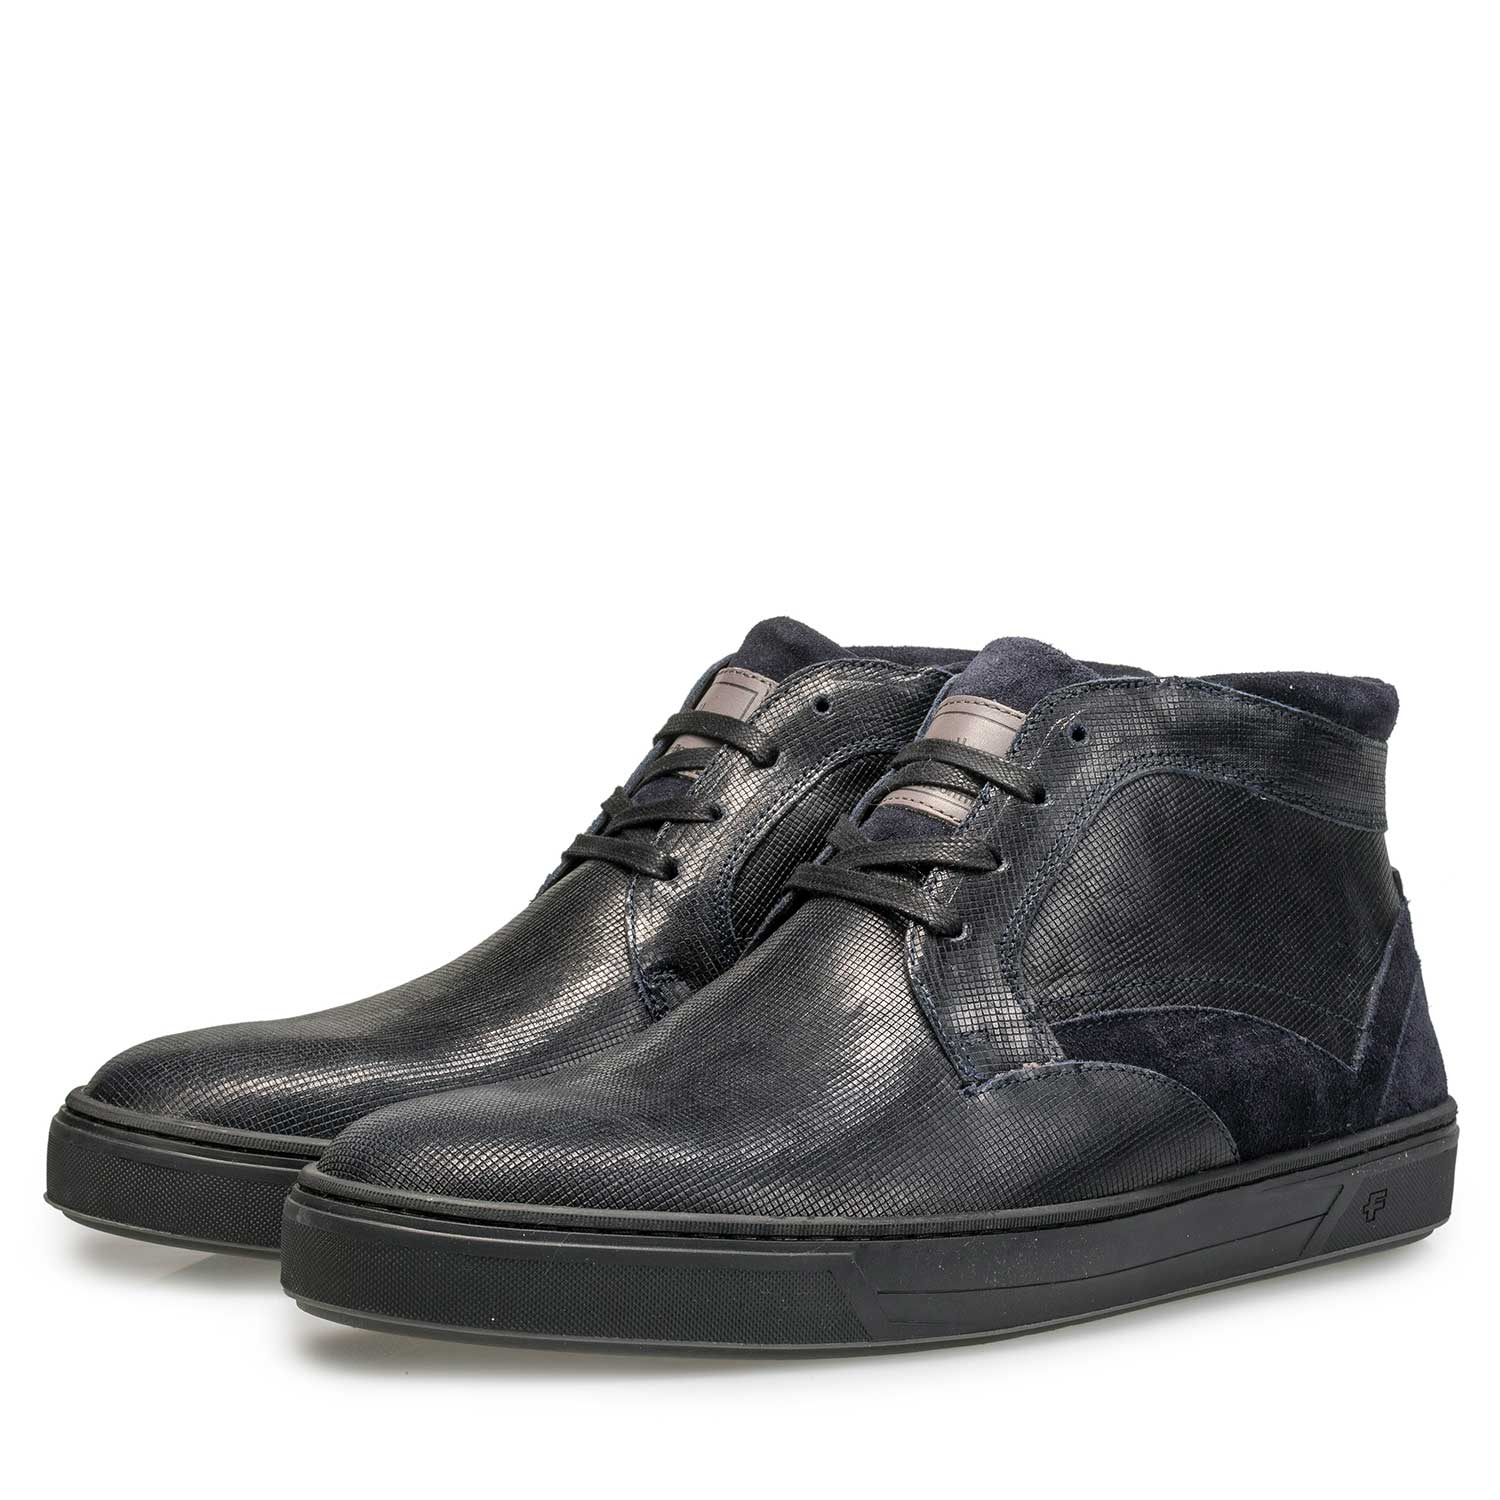 10314/00 - Wool lined, mid-high calf's leather shoe